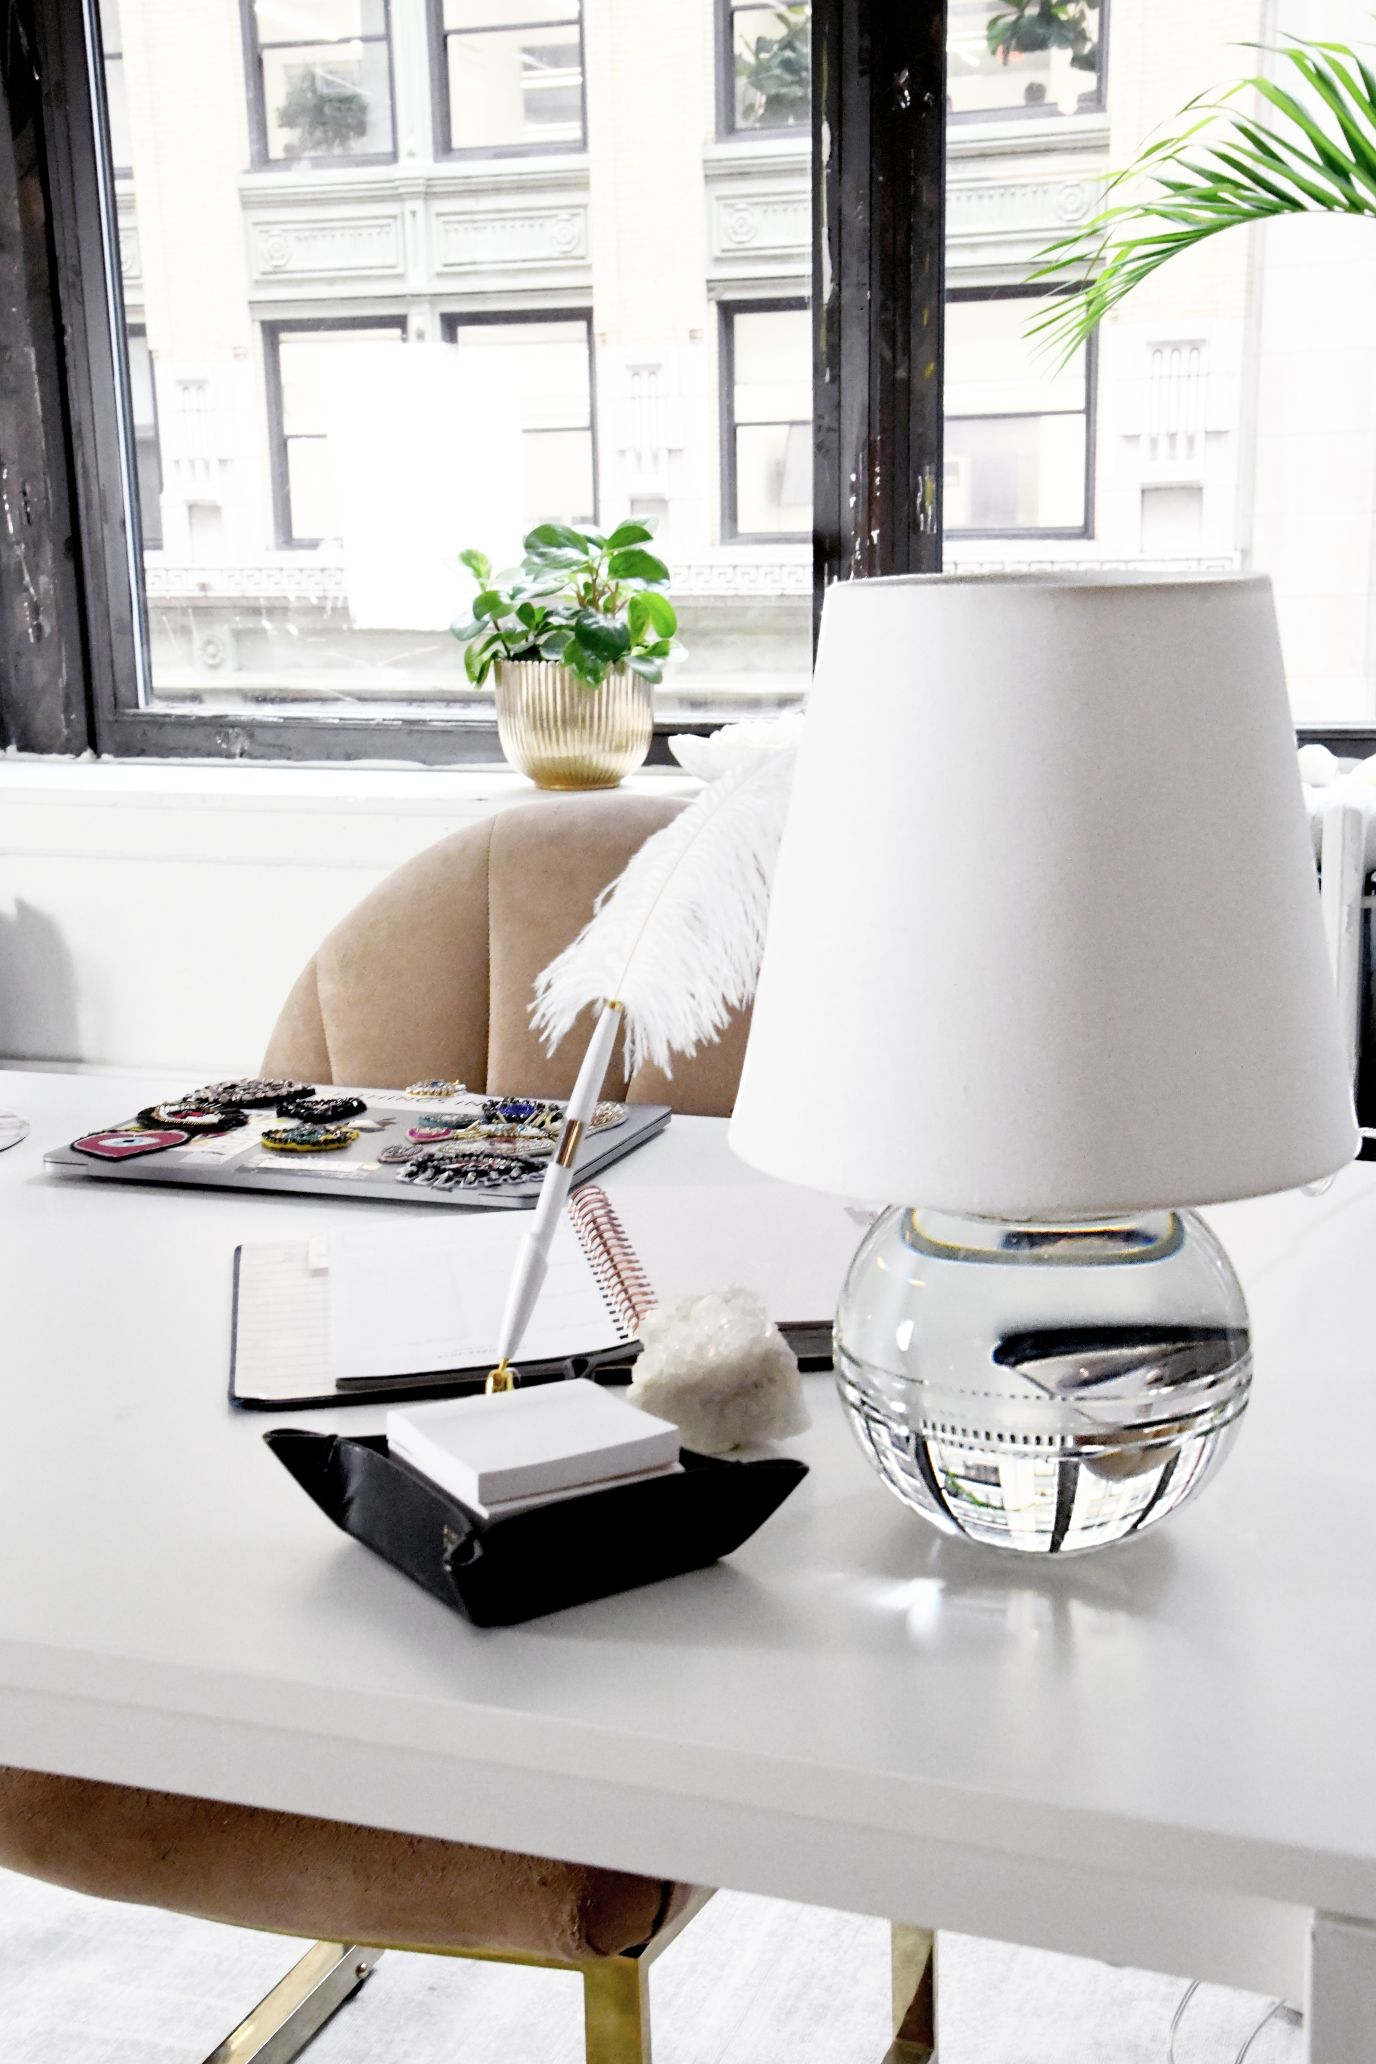 Mitzi Nicole Table Lamp In Polished Nickel In 2020 Table Lamp